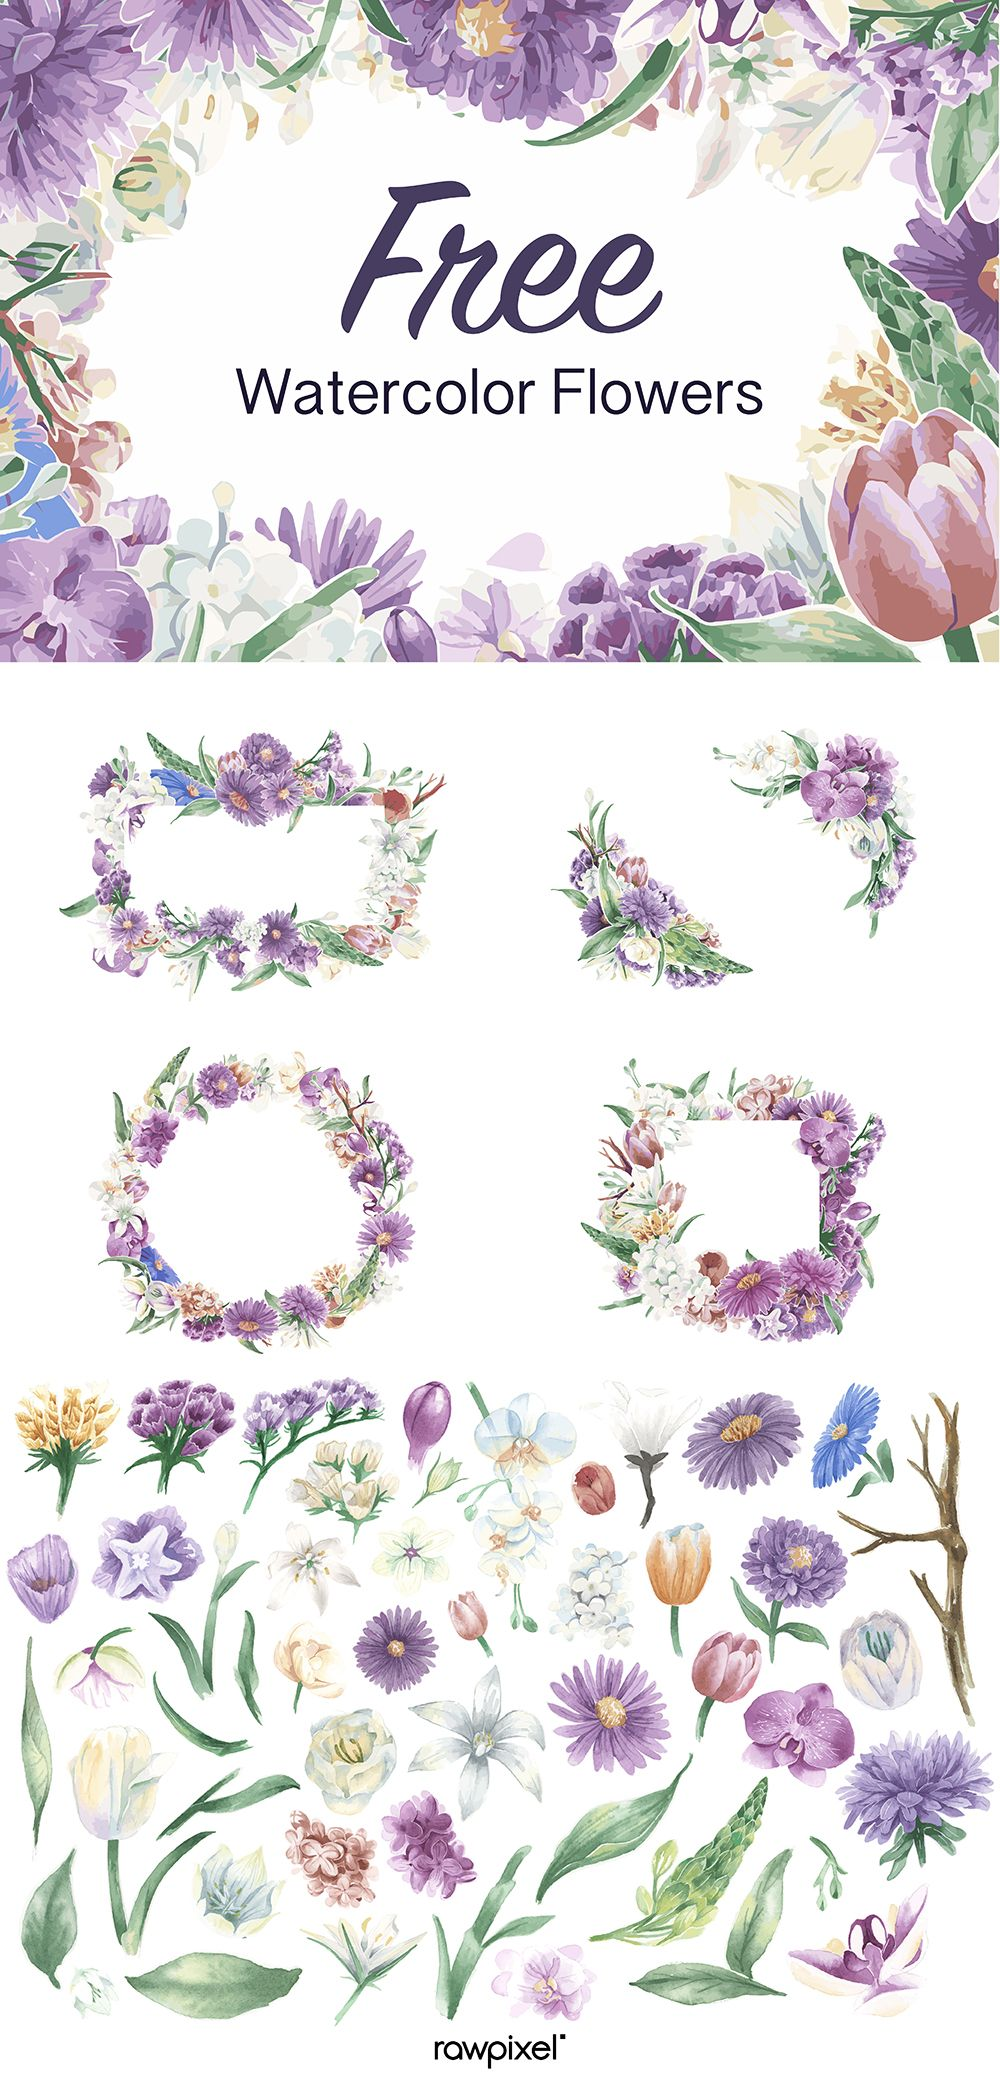 Download Free Vector Watercolor Flowers Images At Rawpixel Com